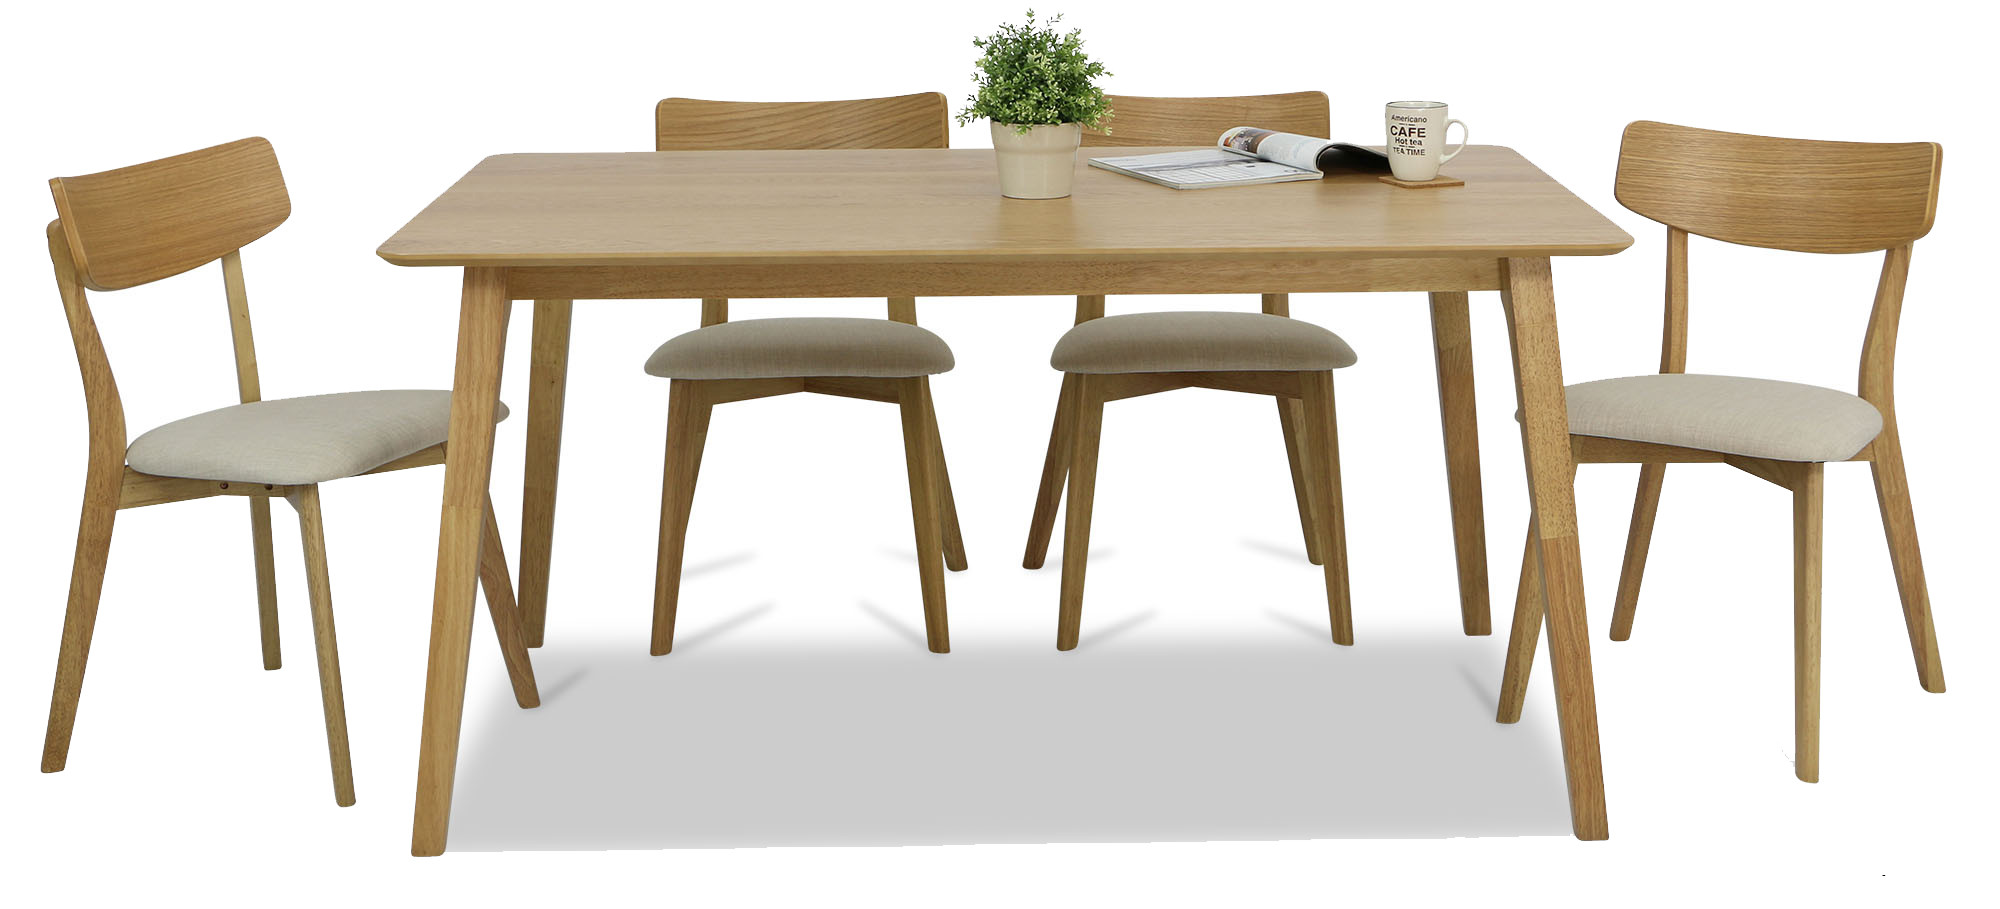 Loto Dining Table Set A 1 4 Dining Sets Dining Room